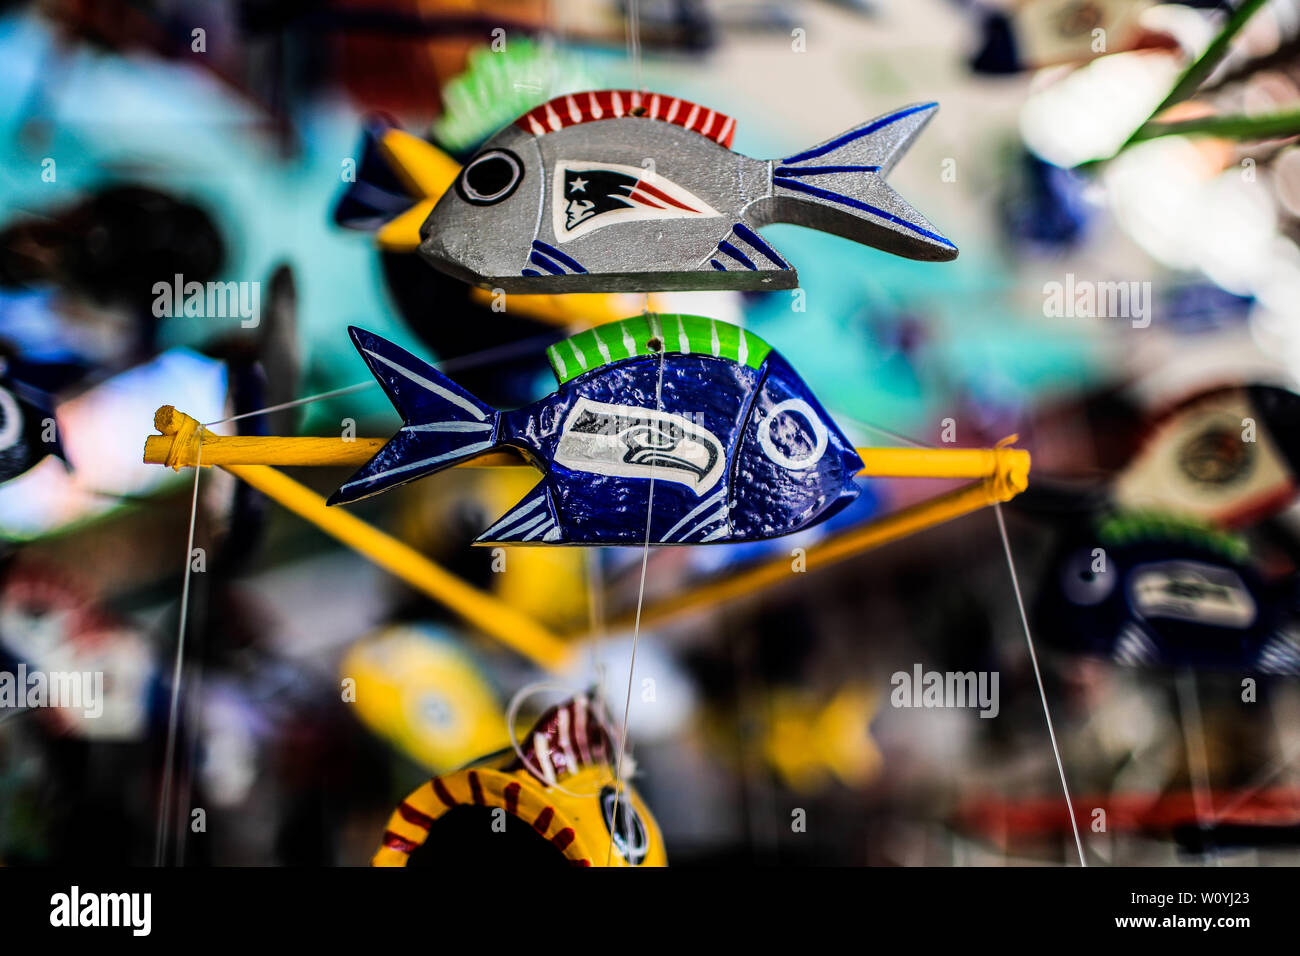 Ceramic fish. Sales of souvenirs in the tourist destination Puerto Peñasco, Sonora, Mexico. crafts, art, handicrafts, beachwear and accessories, ceram Stock Photo